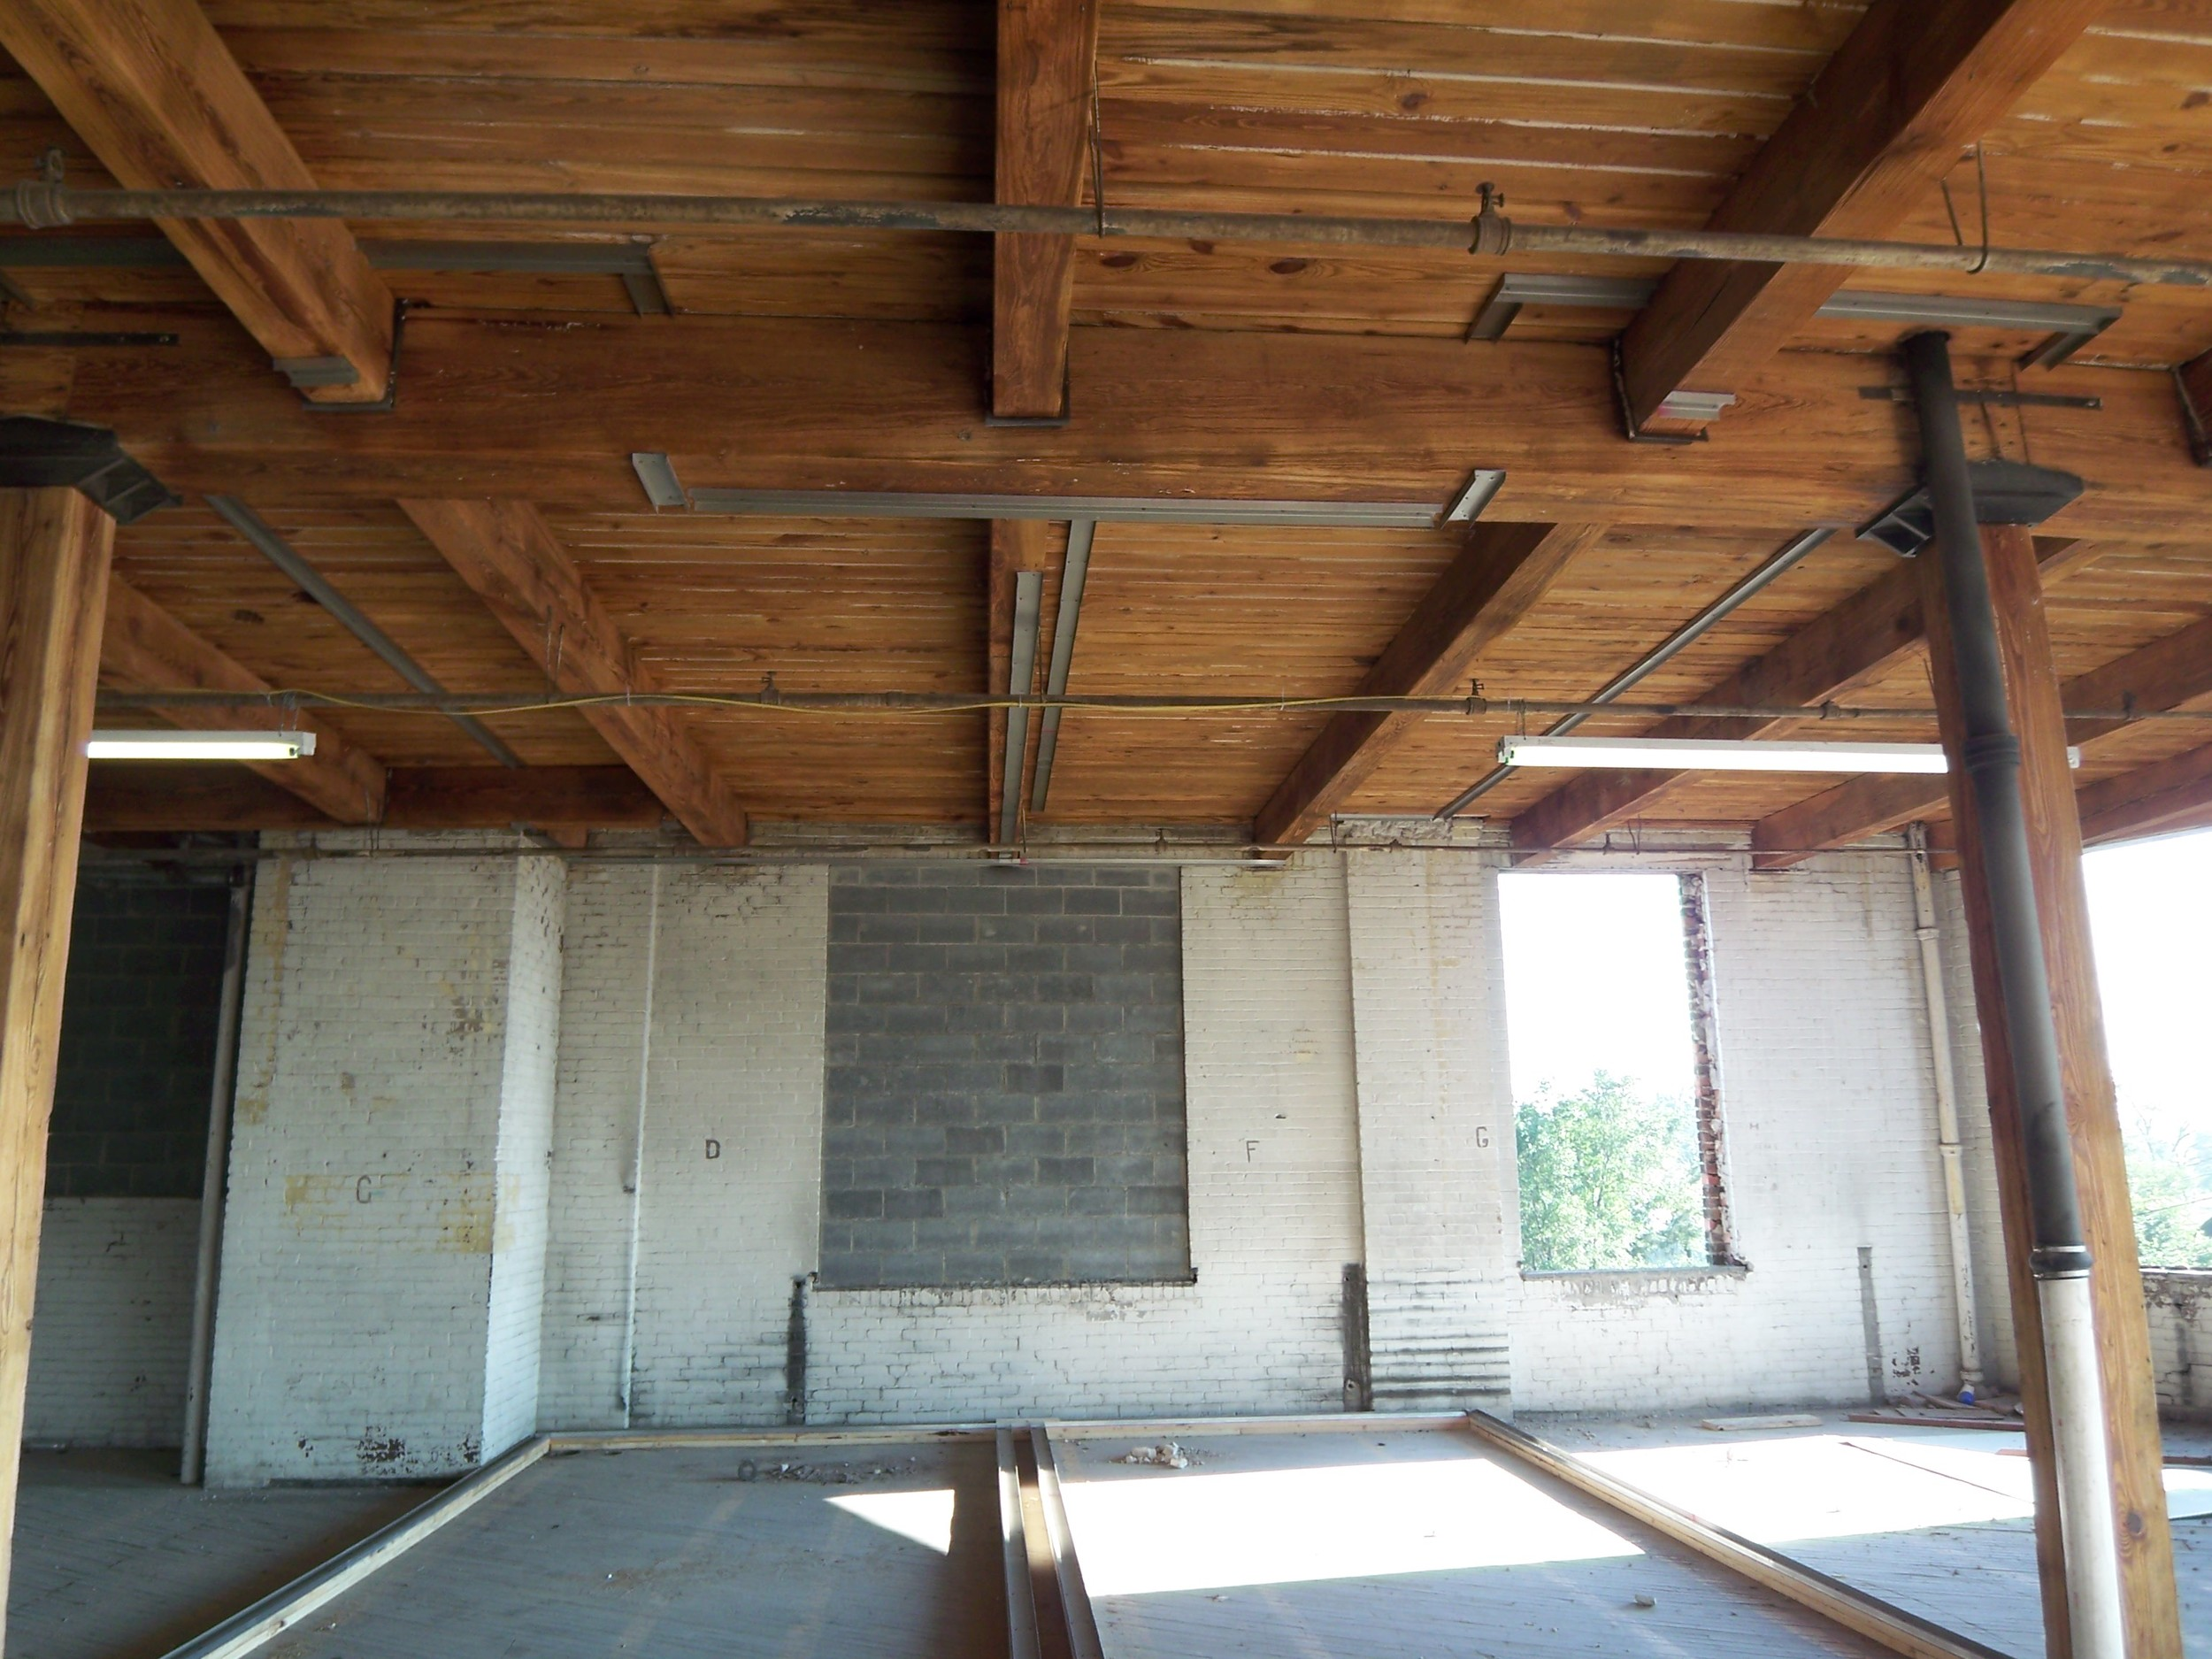 Timber frame and ceilings after restoration.